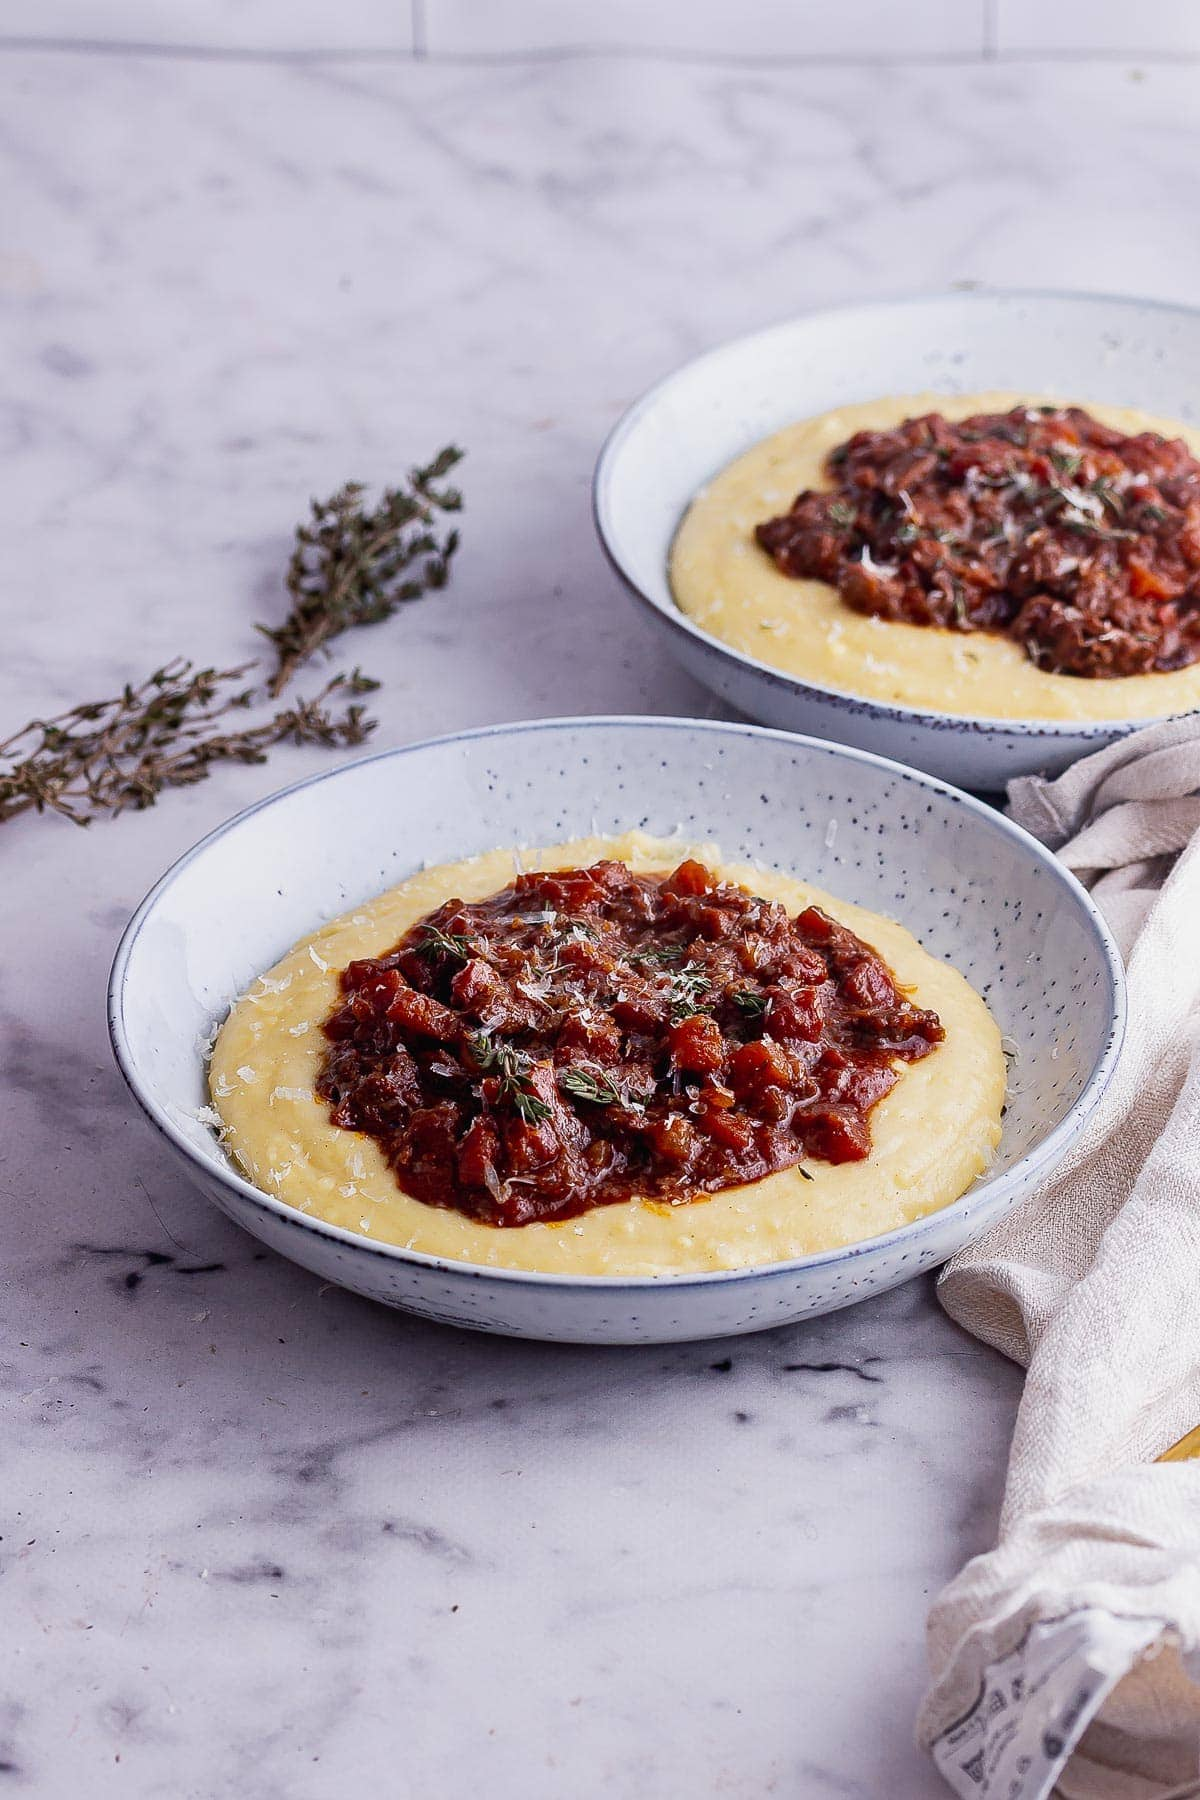 Bowls of polenta topped with rich beef ragout on a marble surface